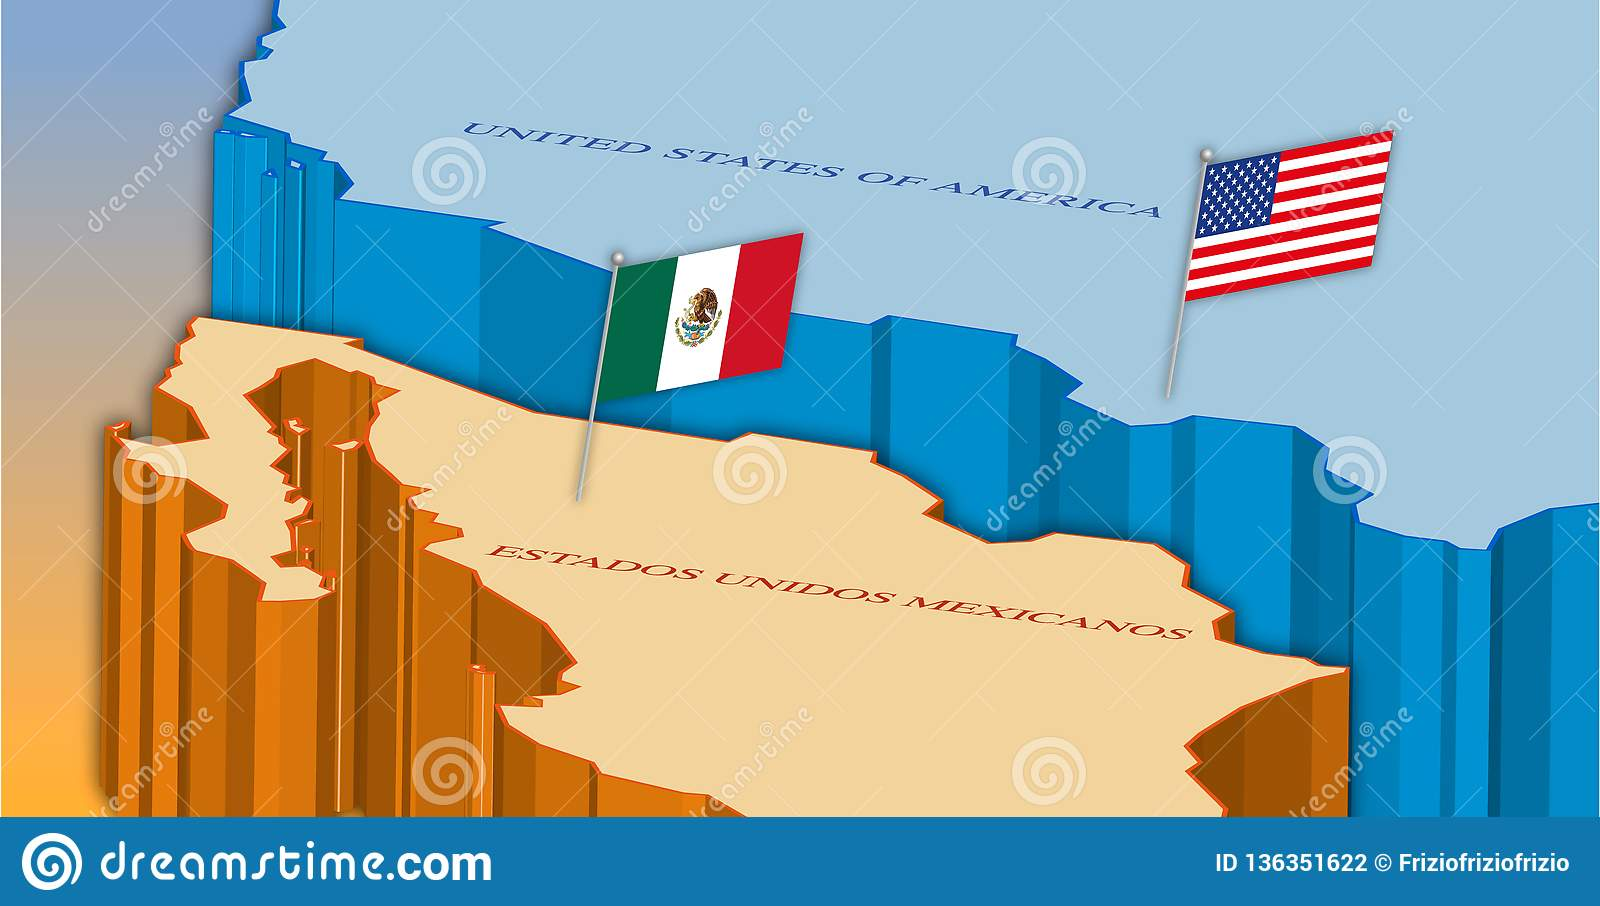 Usa And Mexico Border Map With National Flags Stock Vector